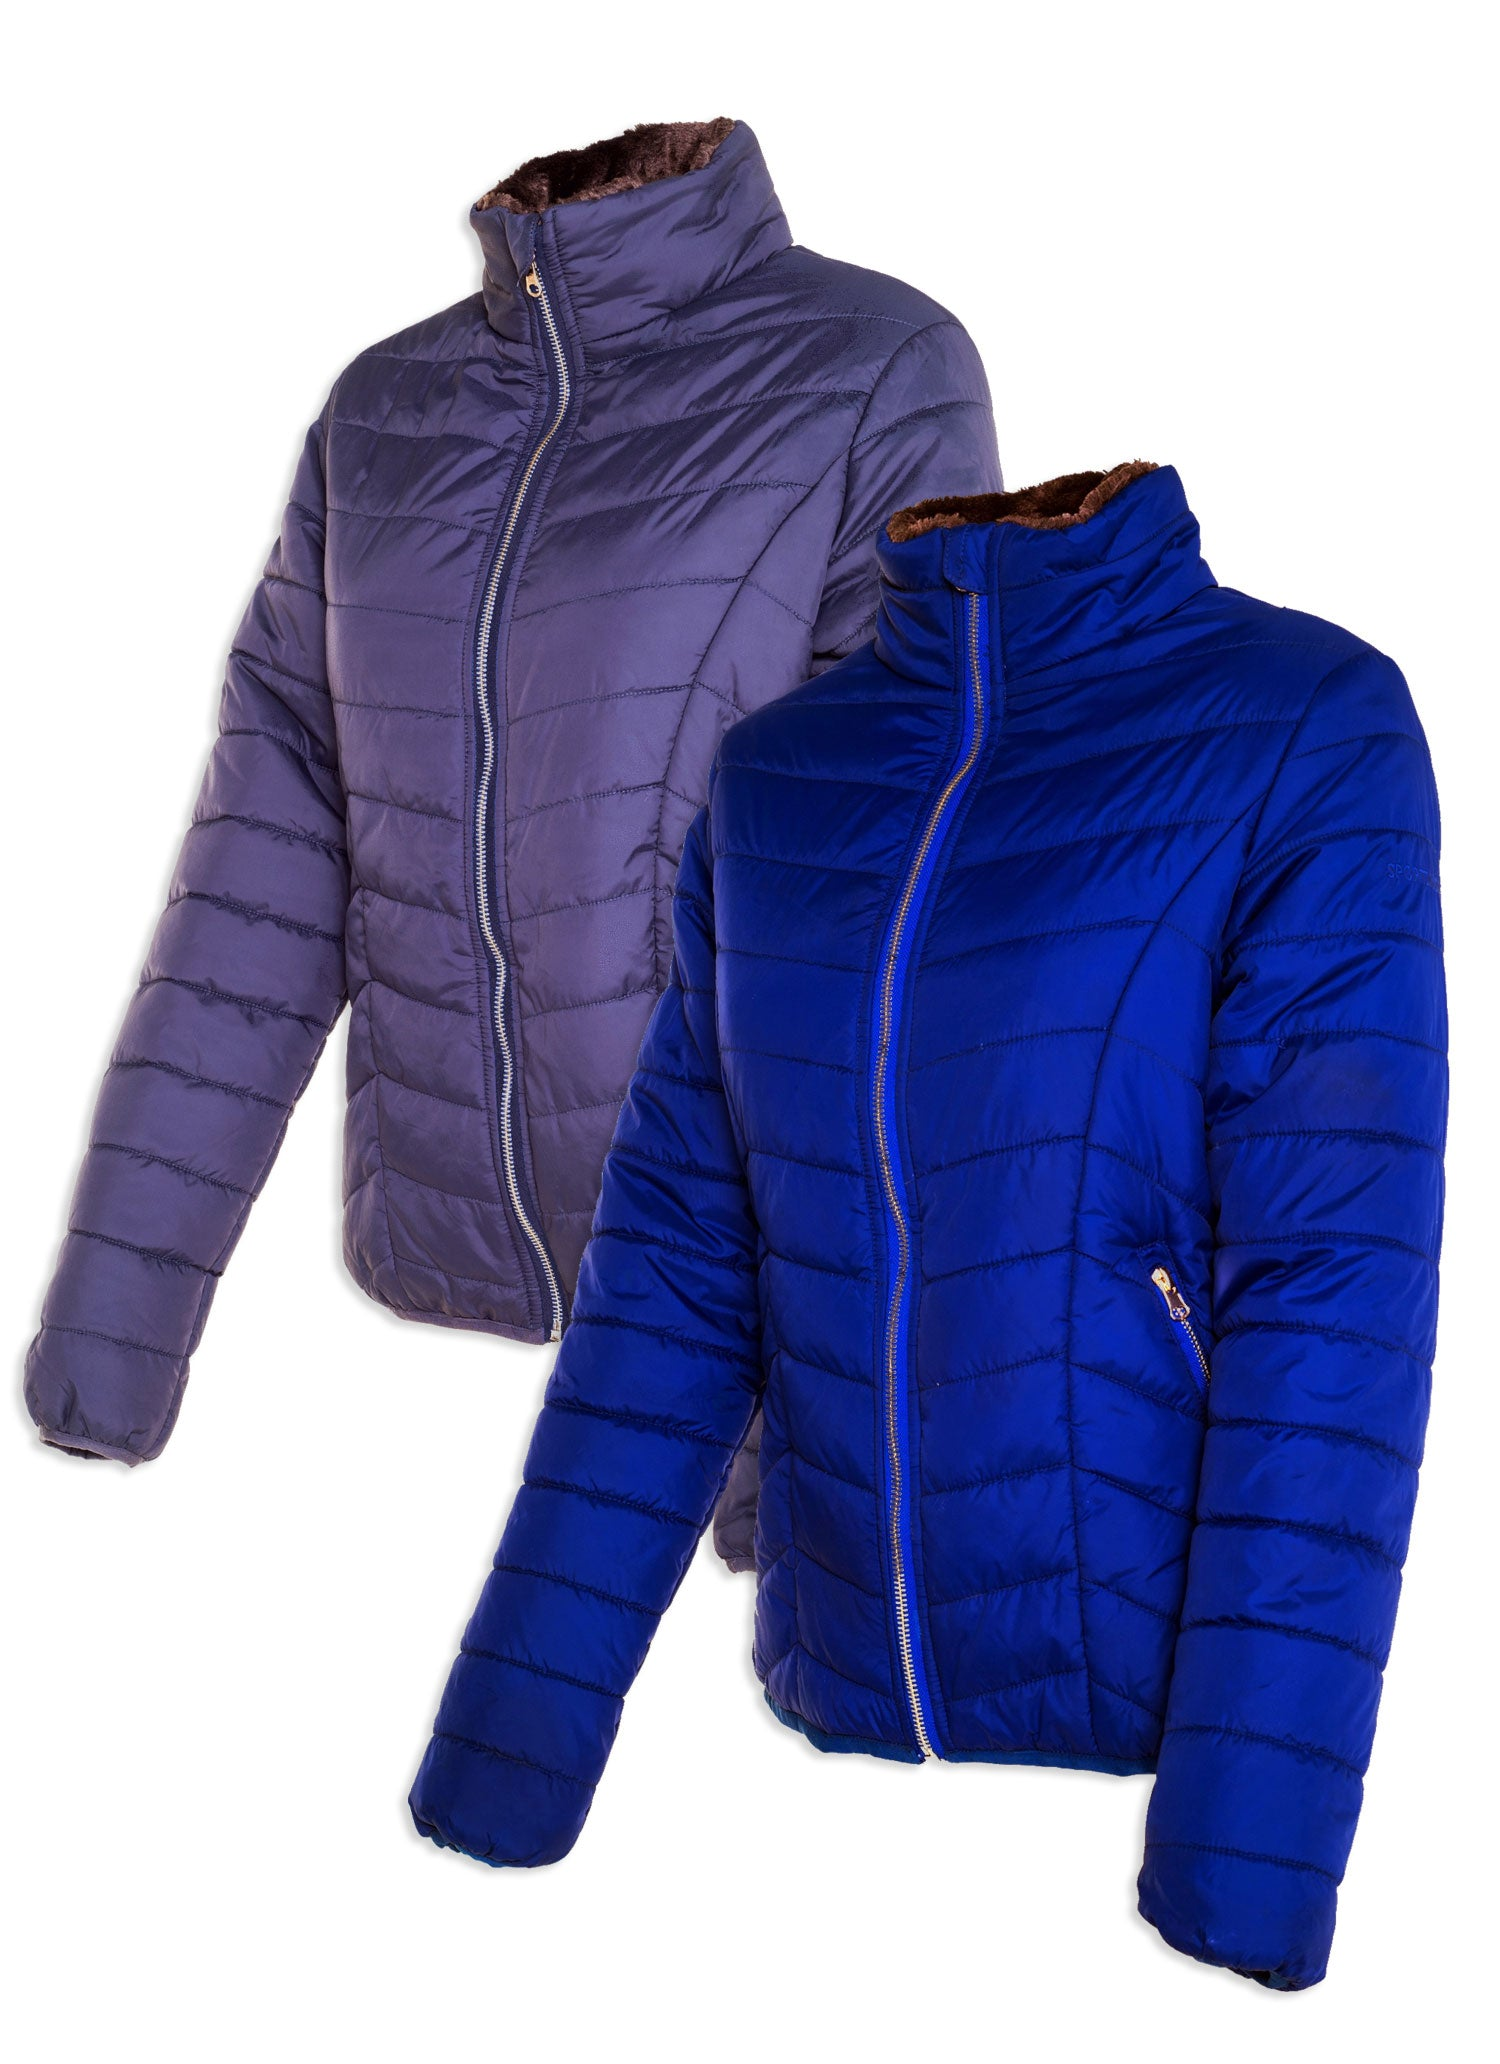 Sporting Hares Alderbury Quilted Jacket in blue and gunmetal